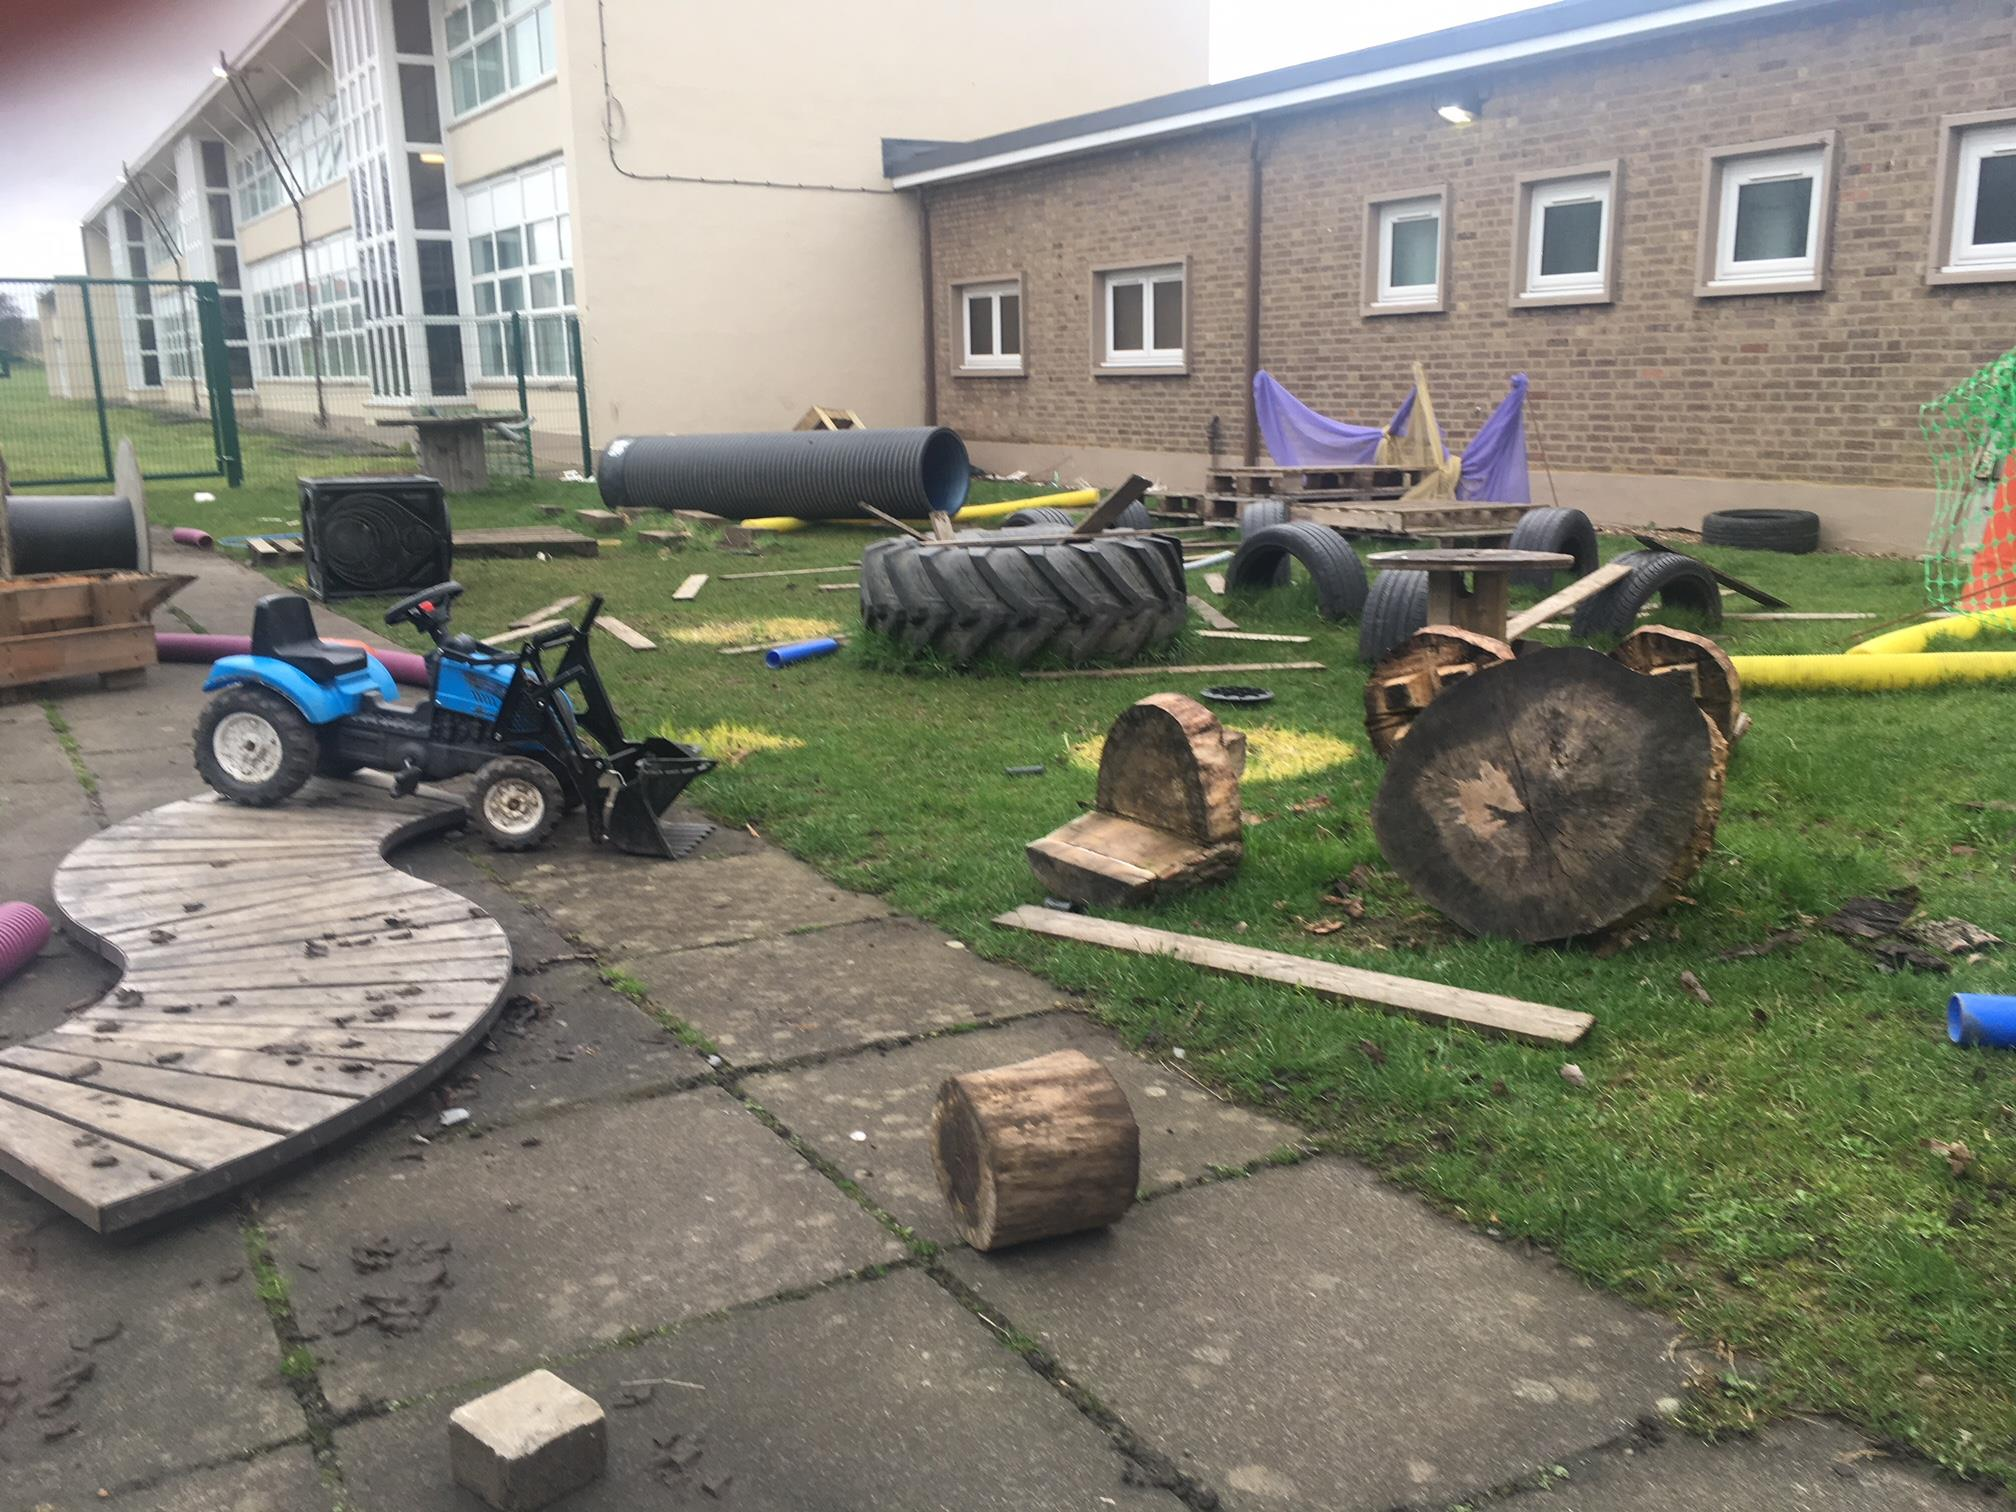 Destruction at Camdean Nursery. Photo: shared by Camdean PS